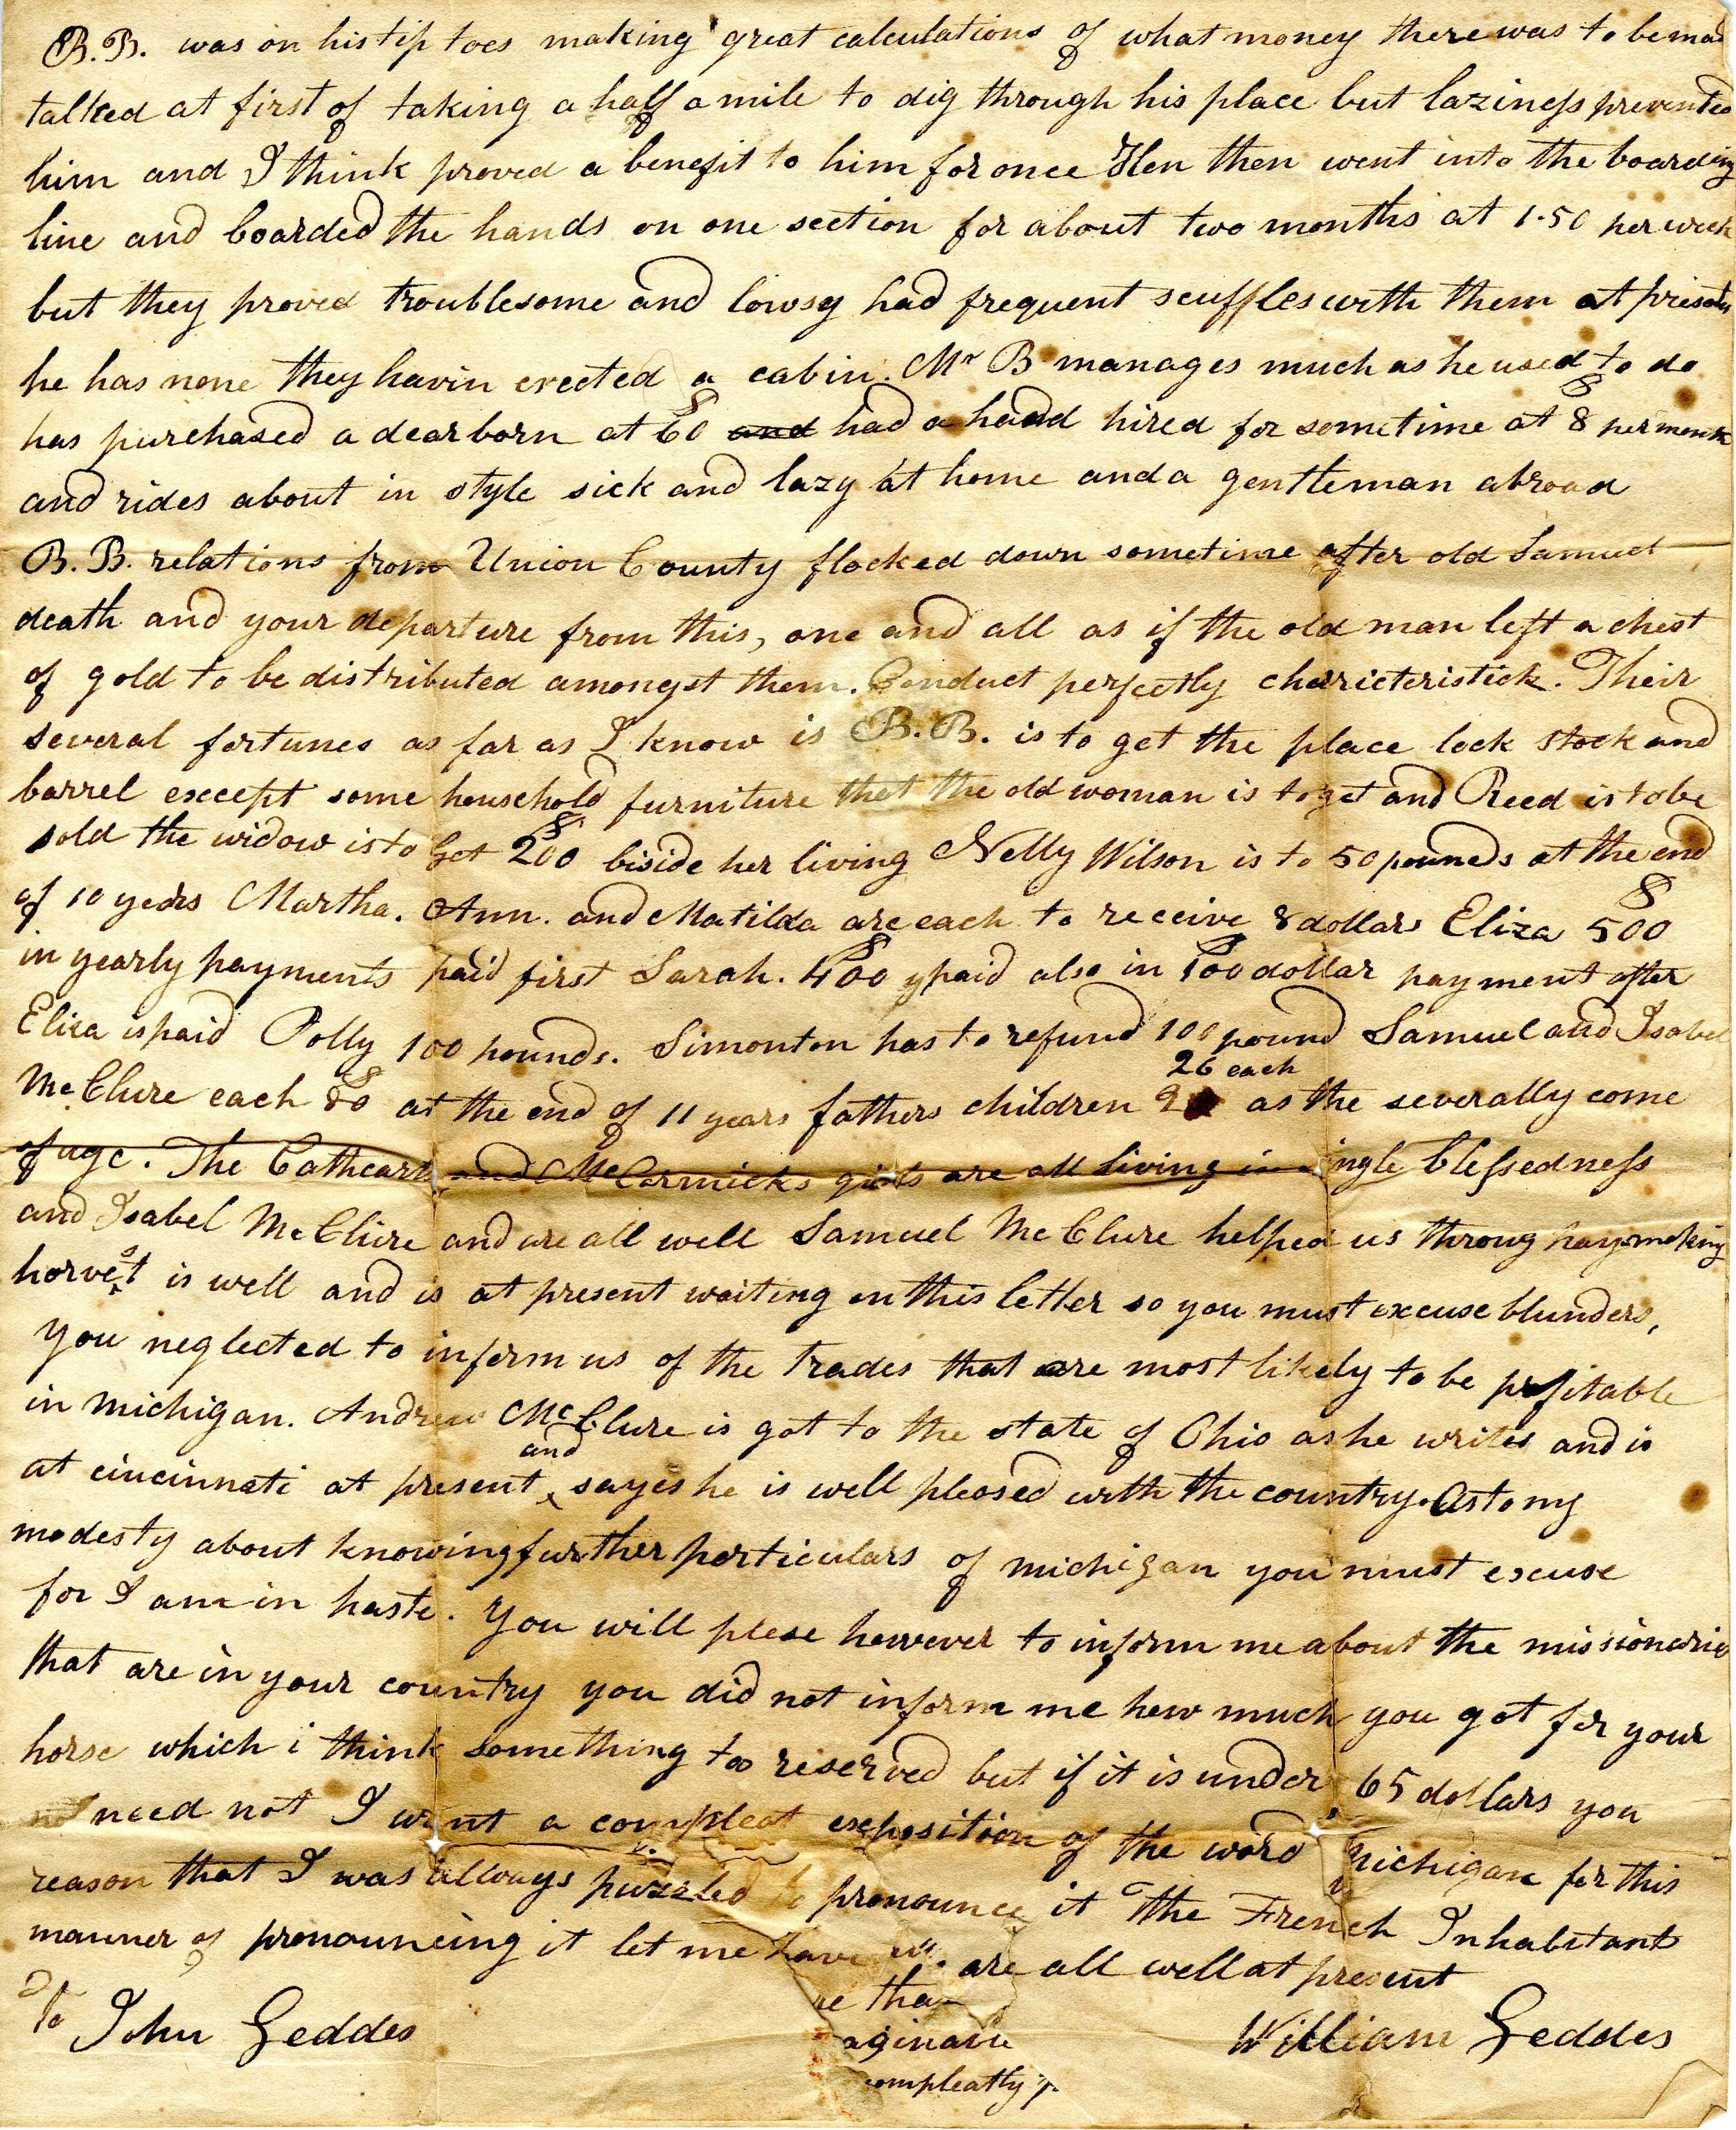 Letter from William Geddes to John Geddes, August 5, 1825 image